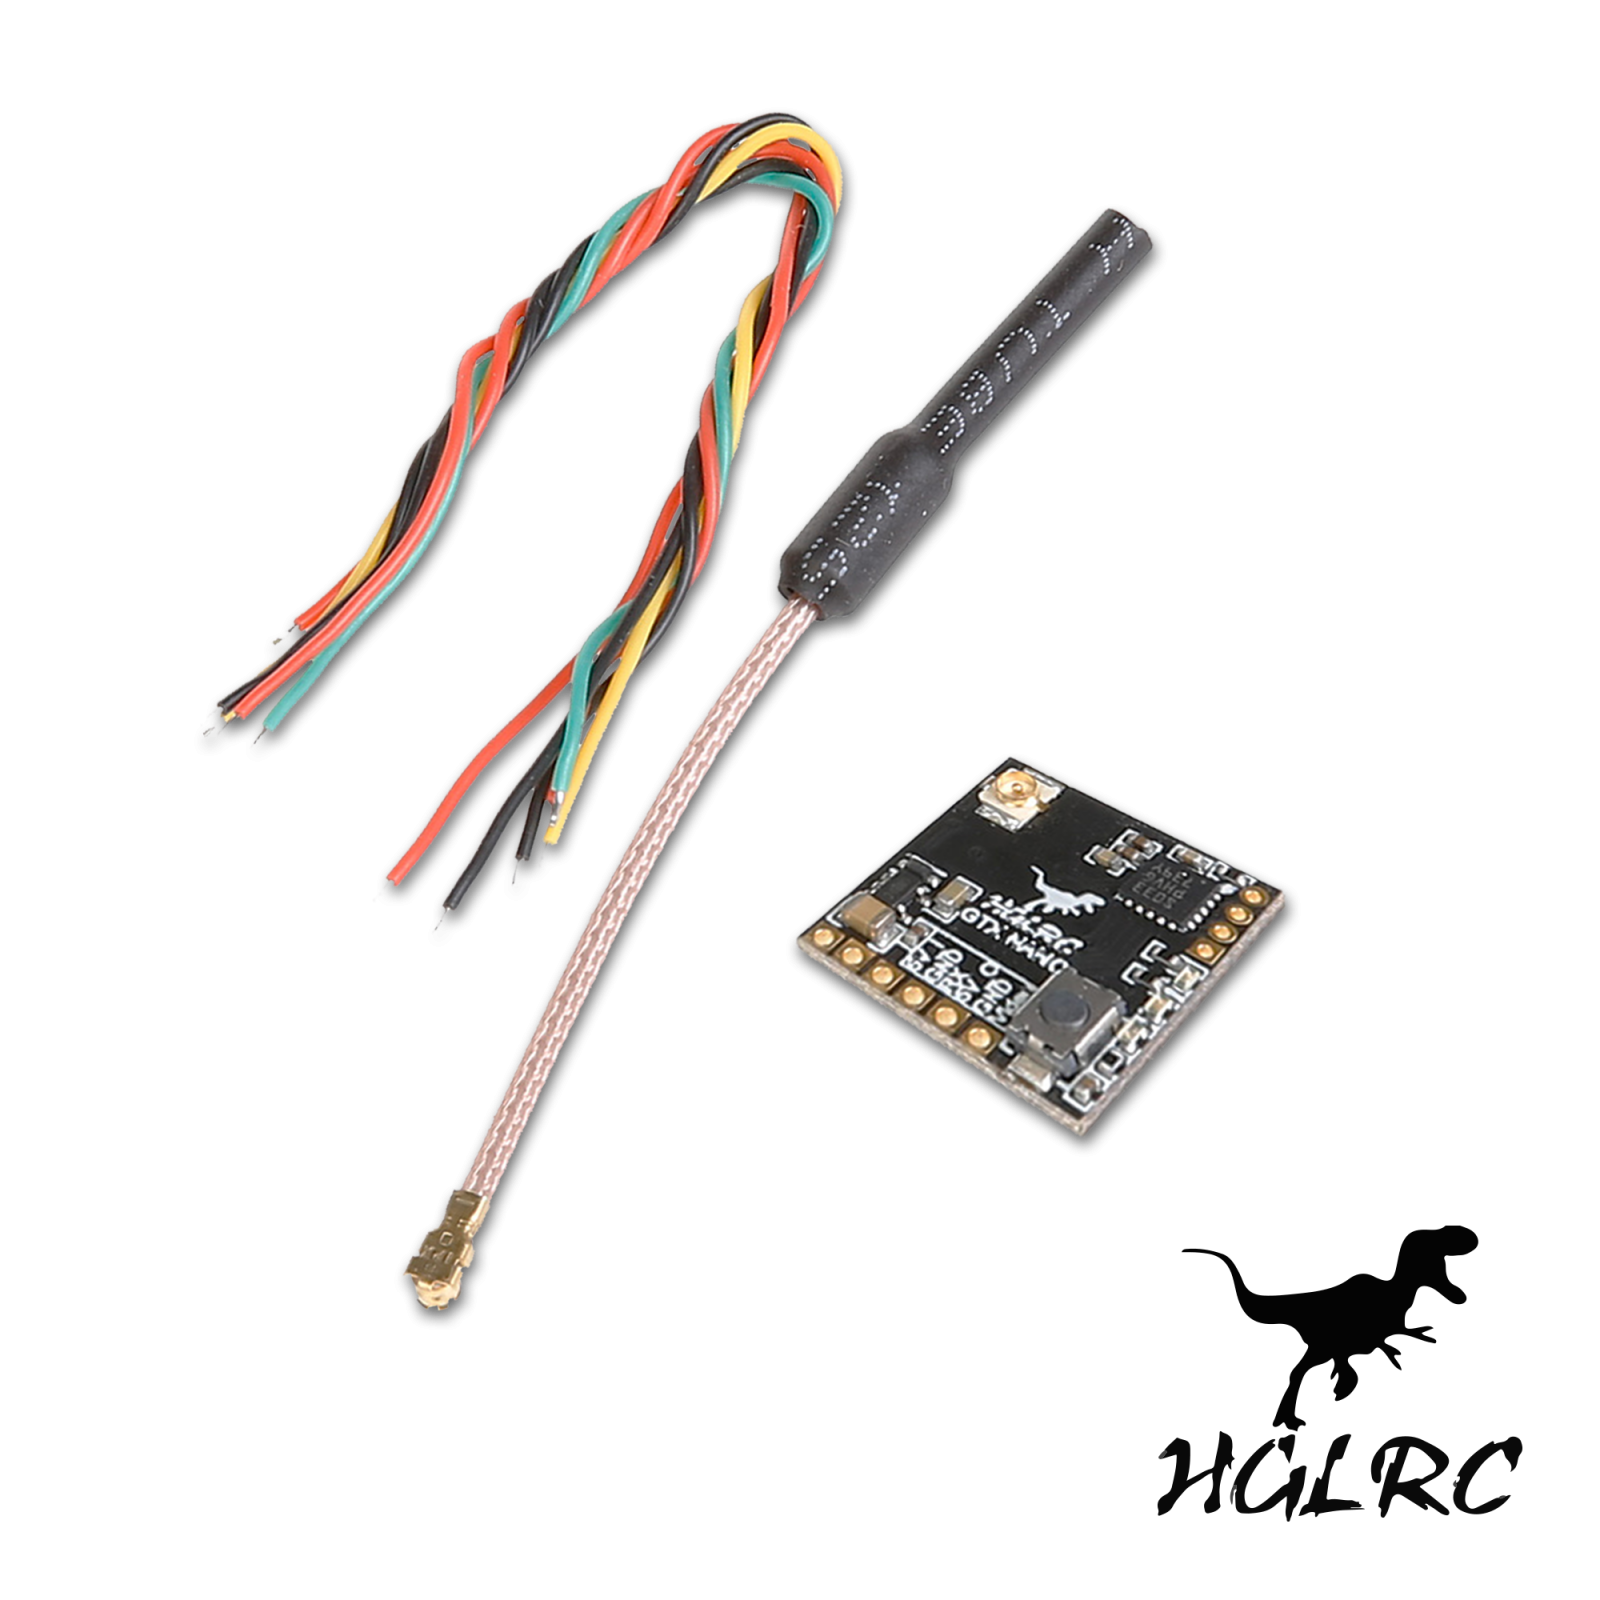 HGLRC GTX Nano VTX, micro size with built in BetaFlight OSD, RUB_14258